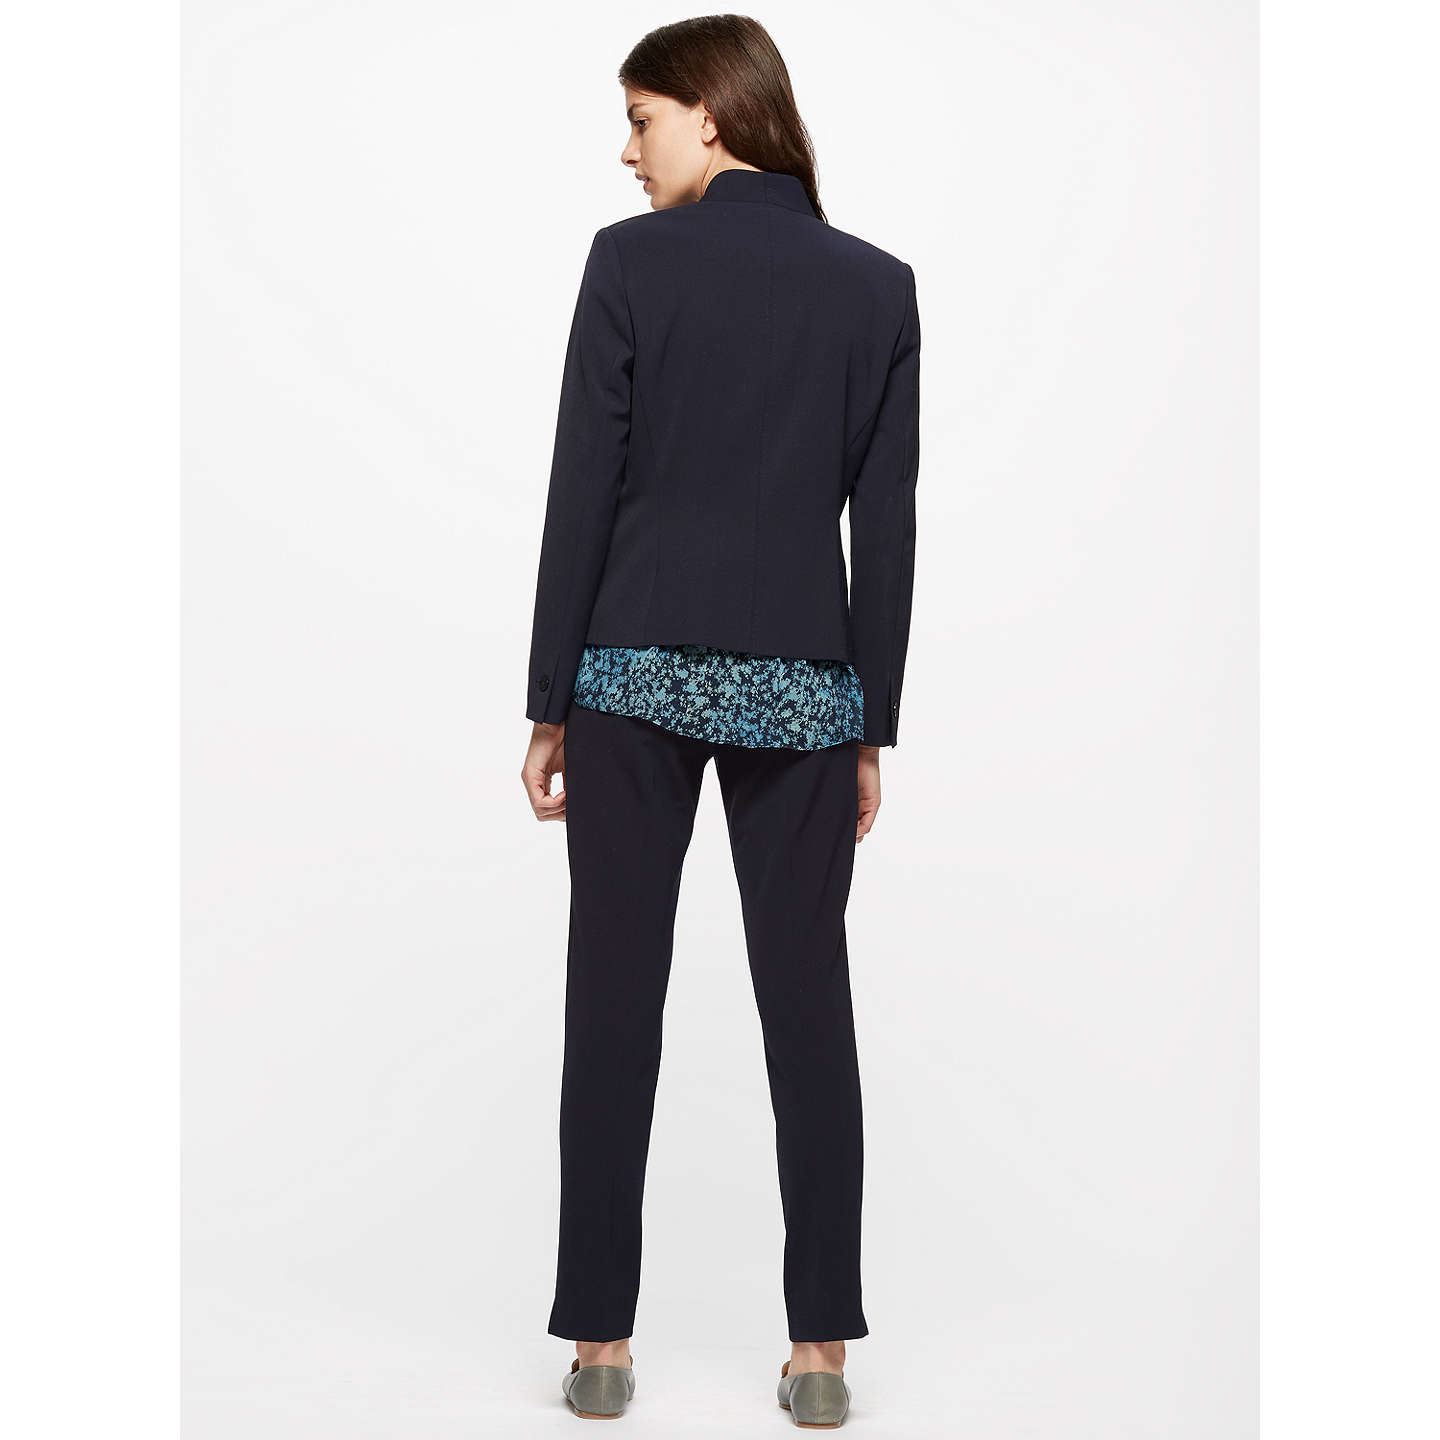 BuyJigsaw Paris Chip Rever Jacket, Navy, 6 Online at johnlewis.com